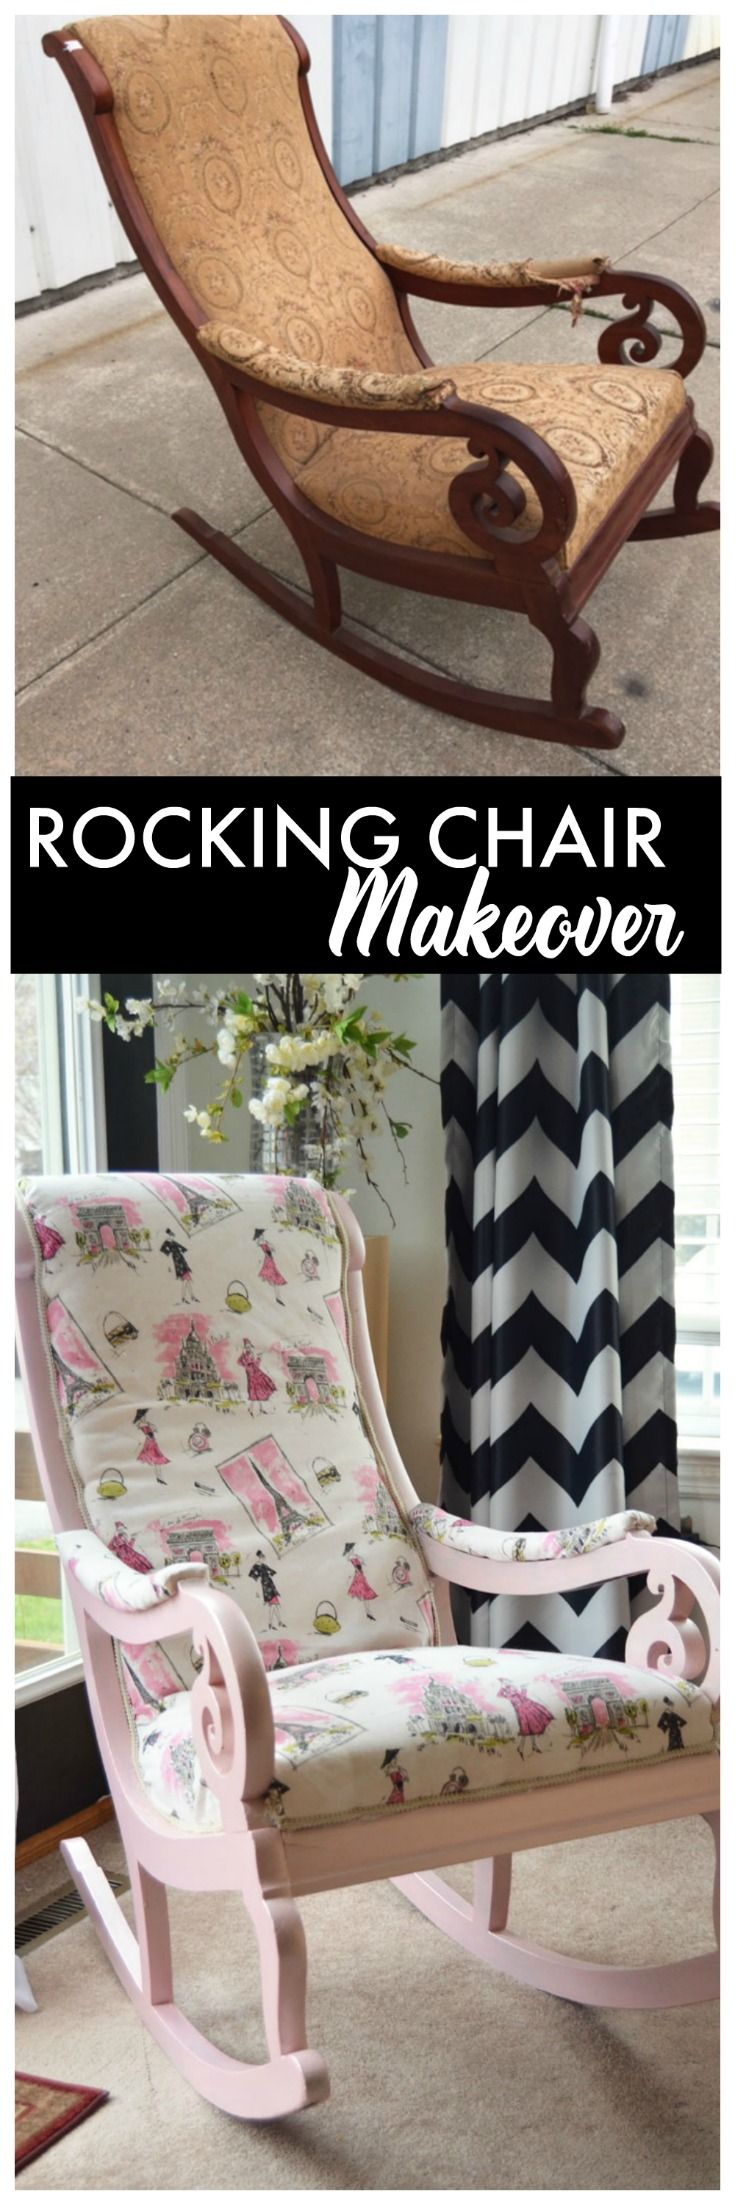 This old Rocking Chair got a brand new look with fake reupholstery and paint  #ad